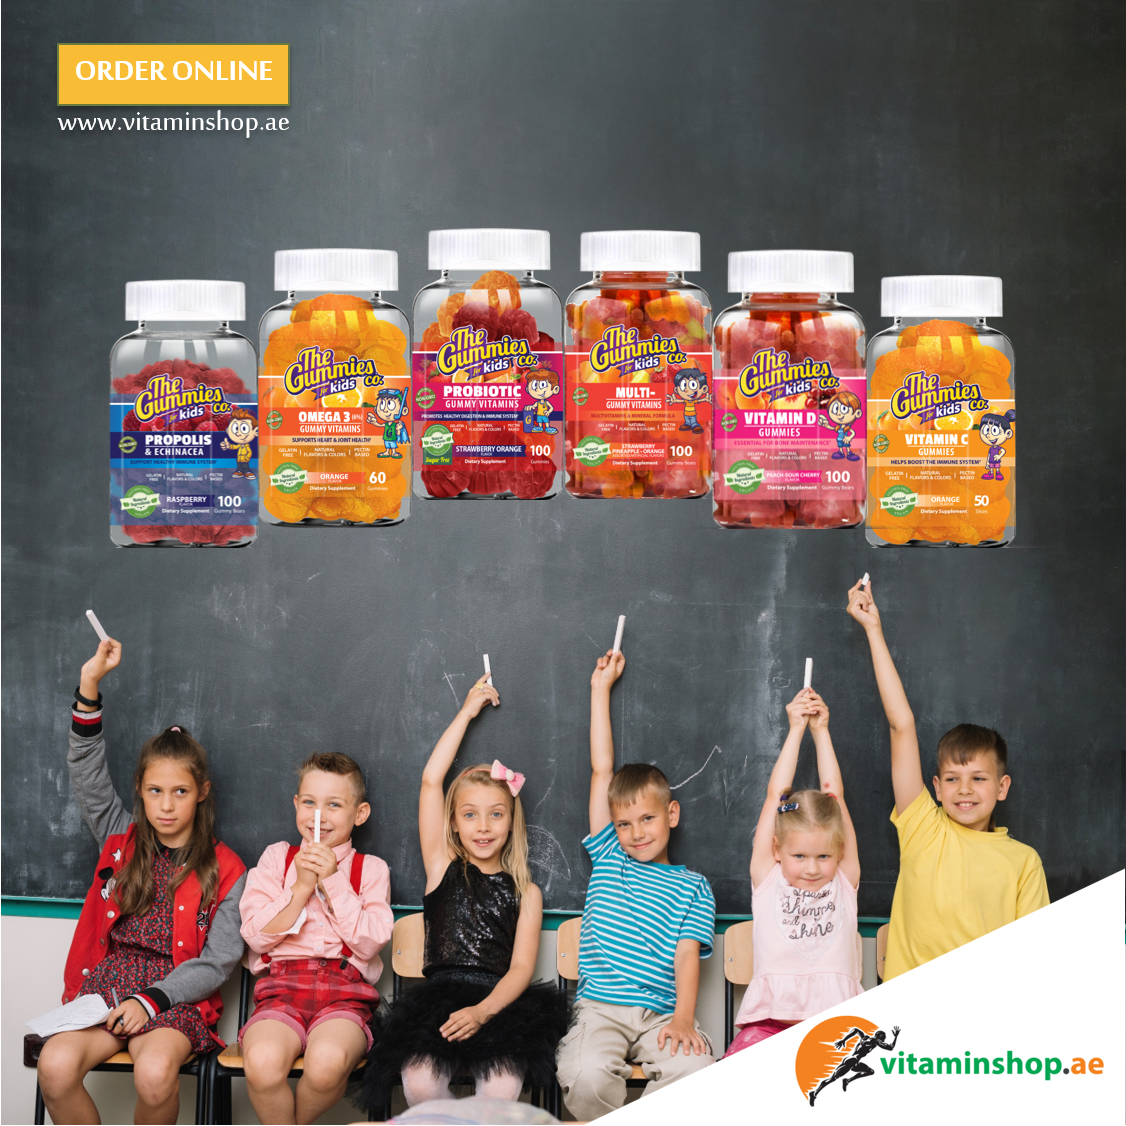 How About Something That Is Healthy And Tasty Your Kids Will Love The Tasty And Health Products From The Gummies Co Go Grab Their Favorite Flavor هل تفكر